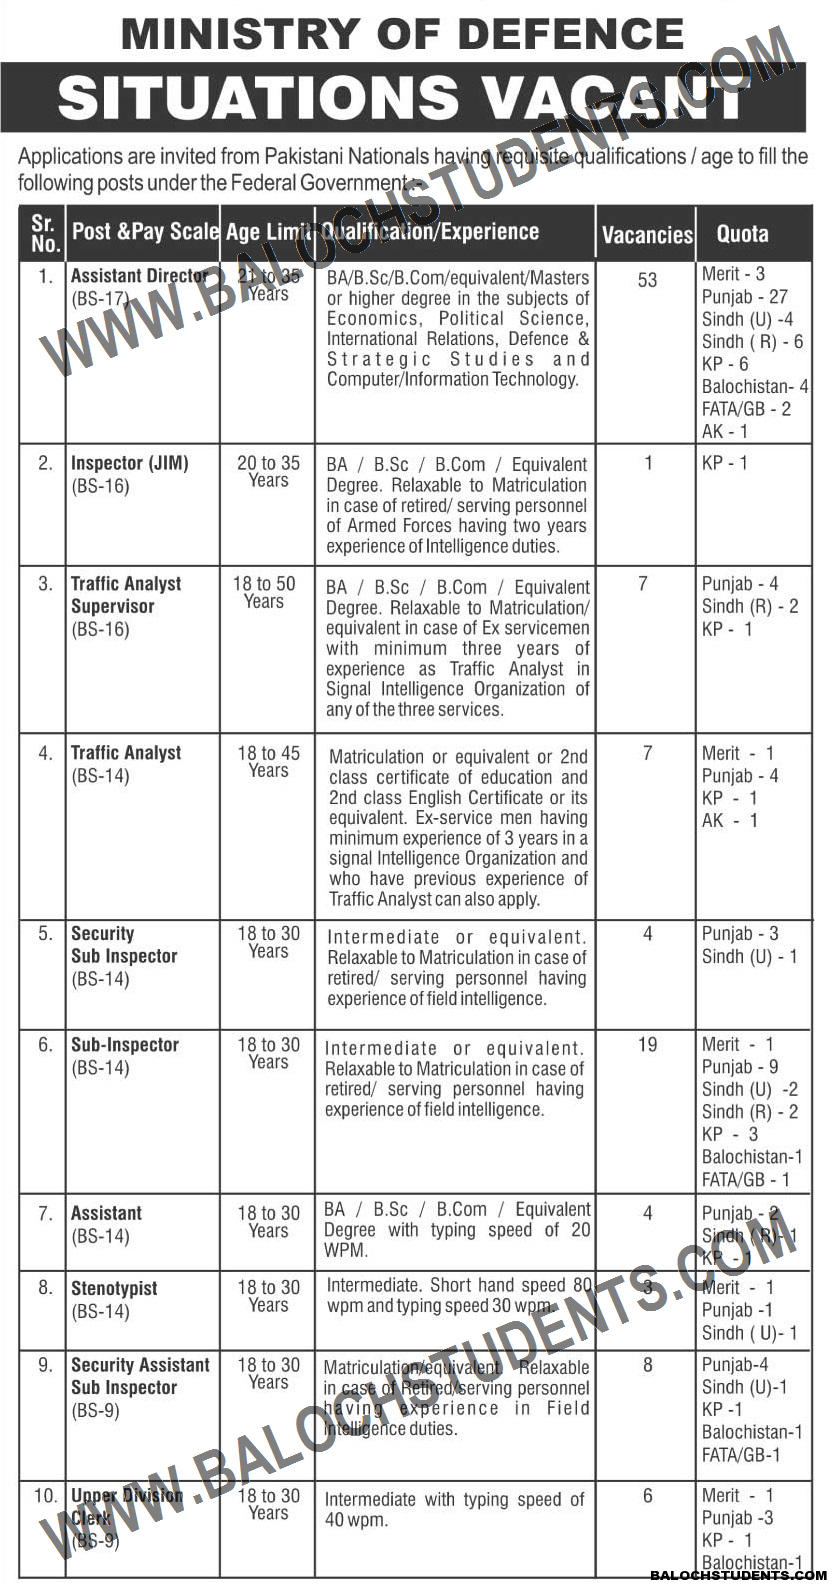 Ministry Of Defence Situations Vacant